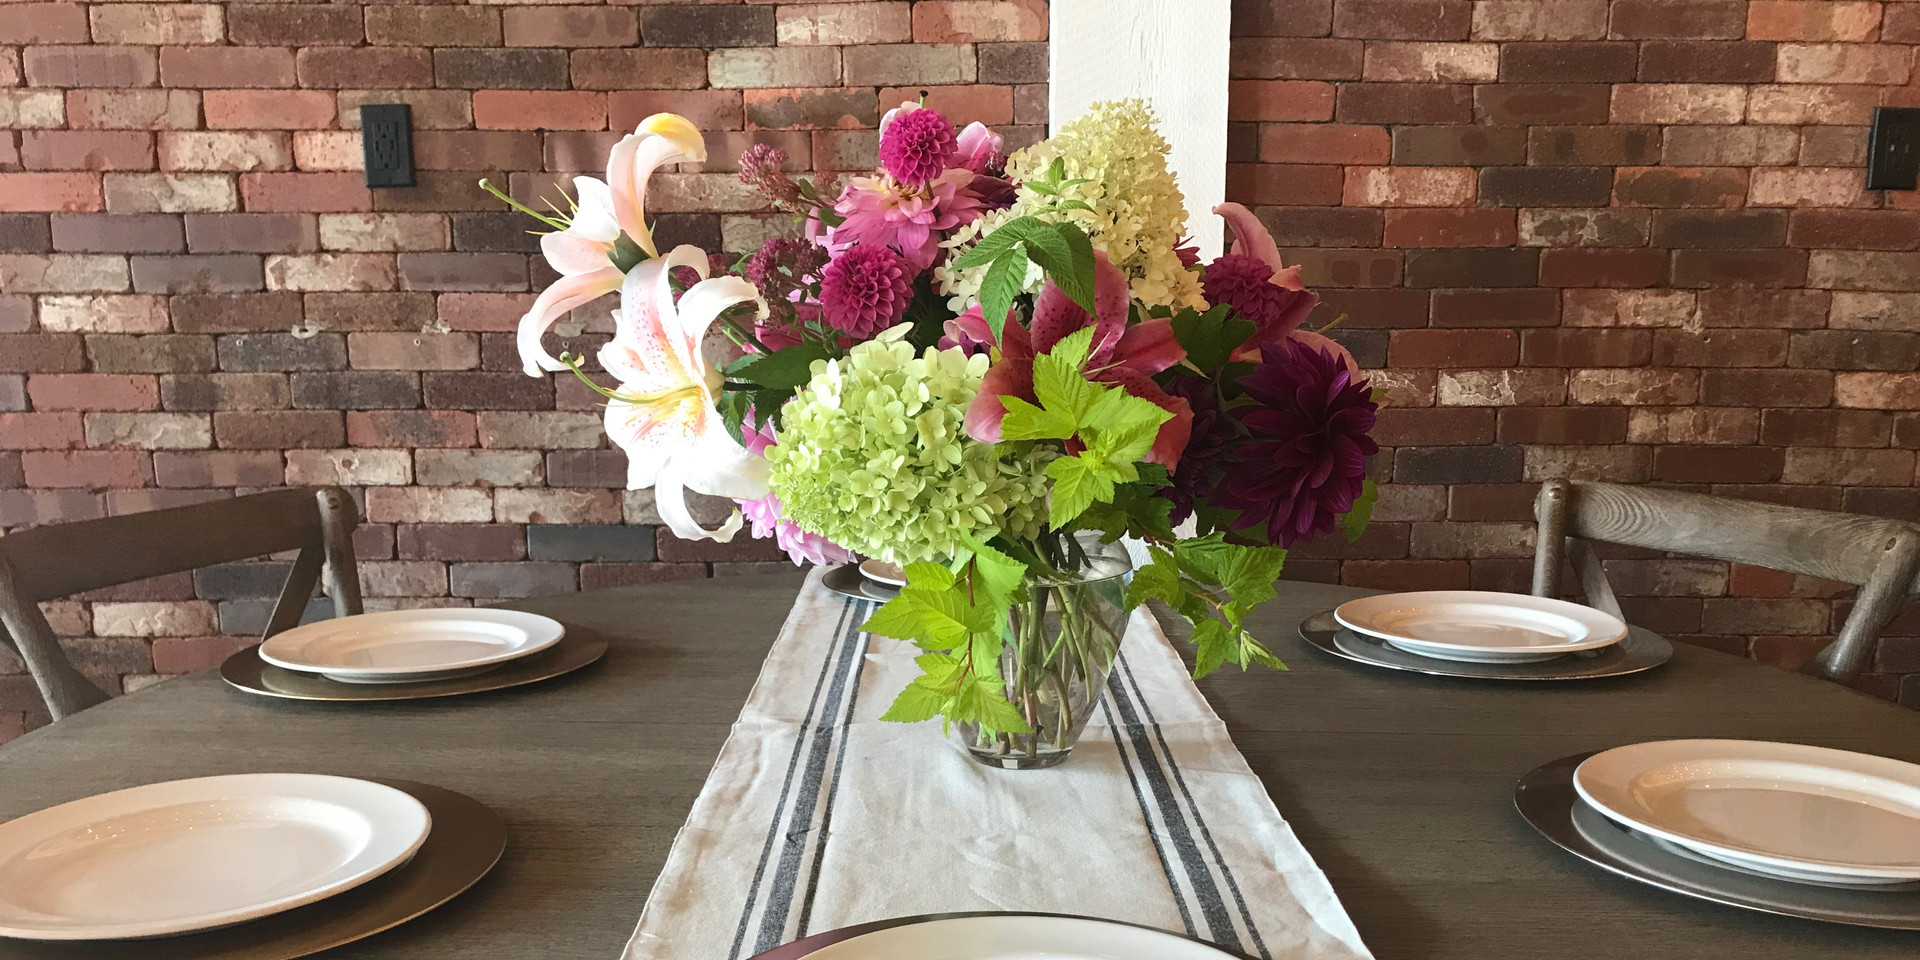 Table setting with flowers (002).jpeg